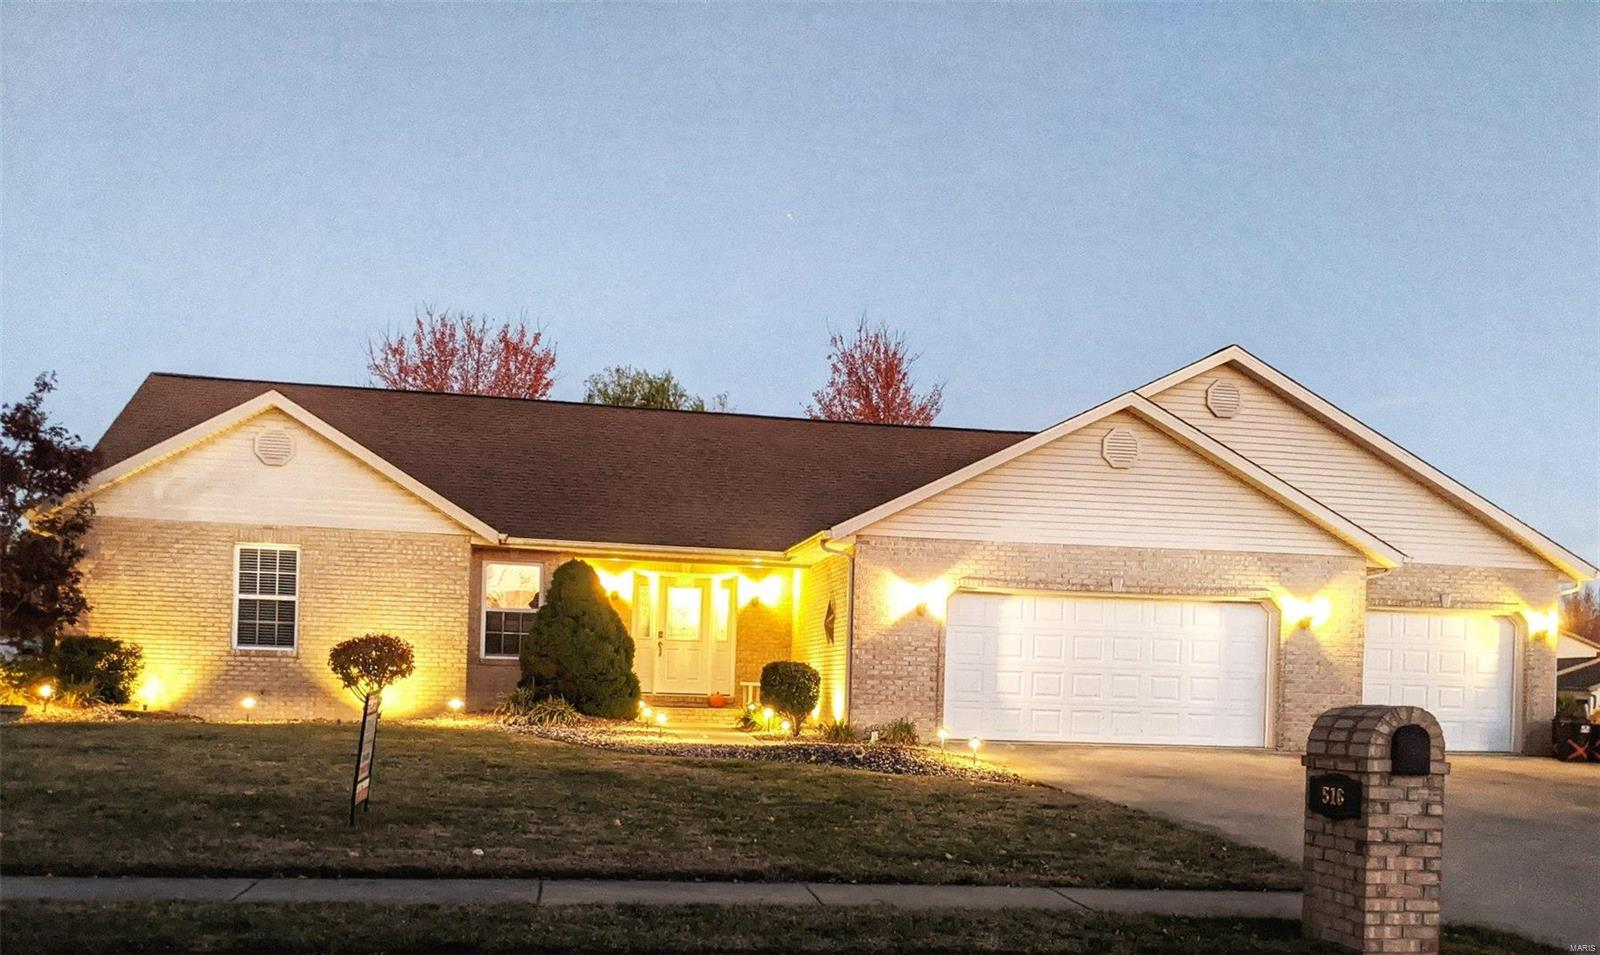 516 Kathy Property Photo - New Baden, IL real estate listing